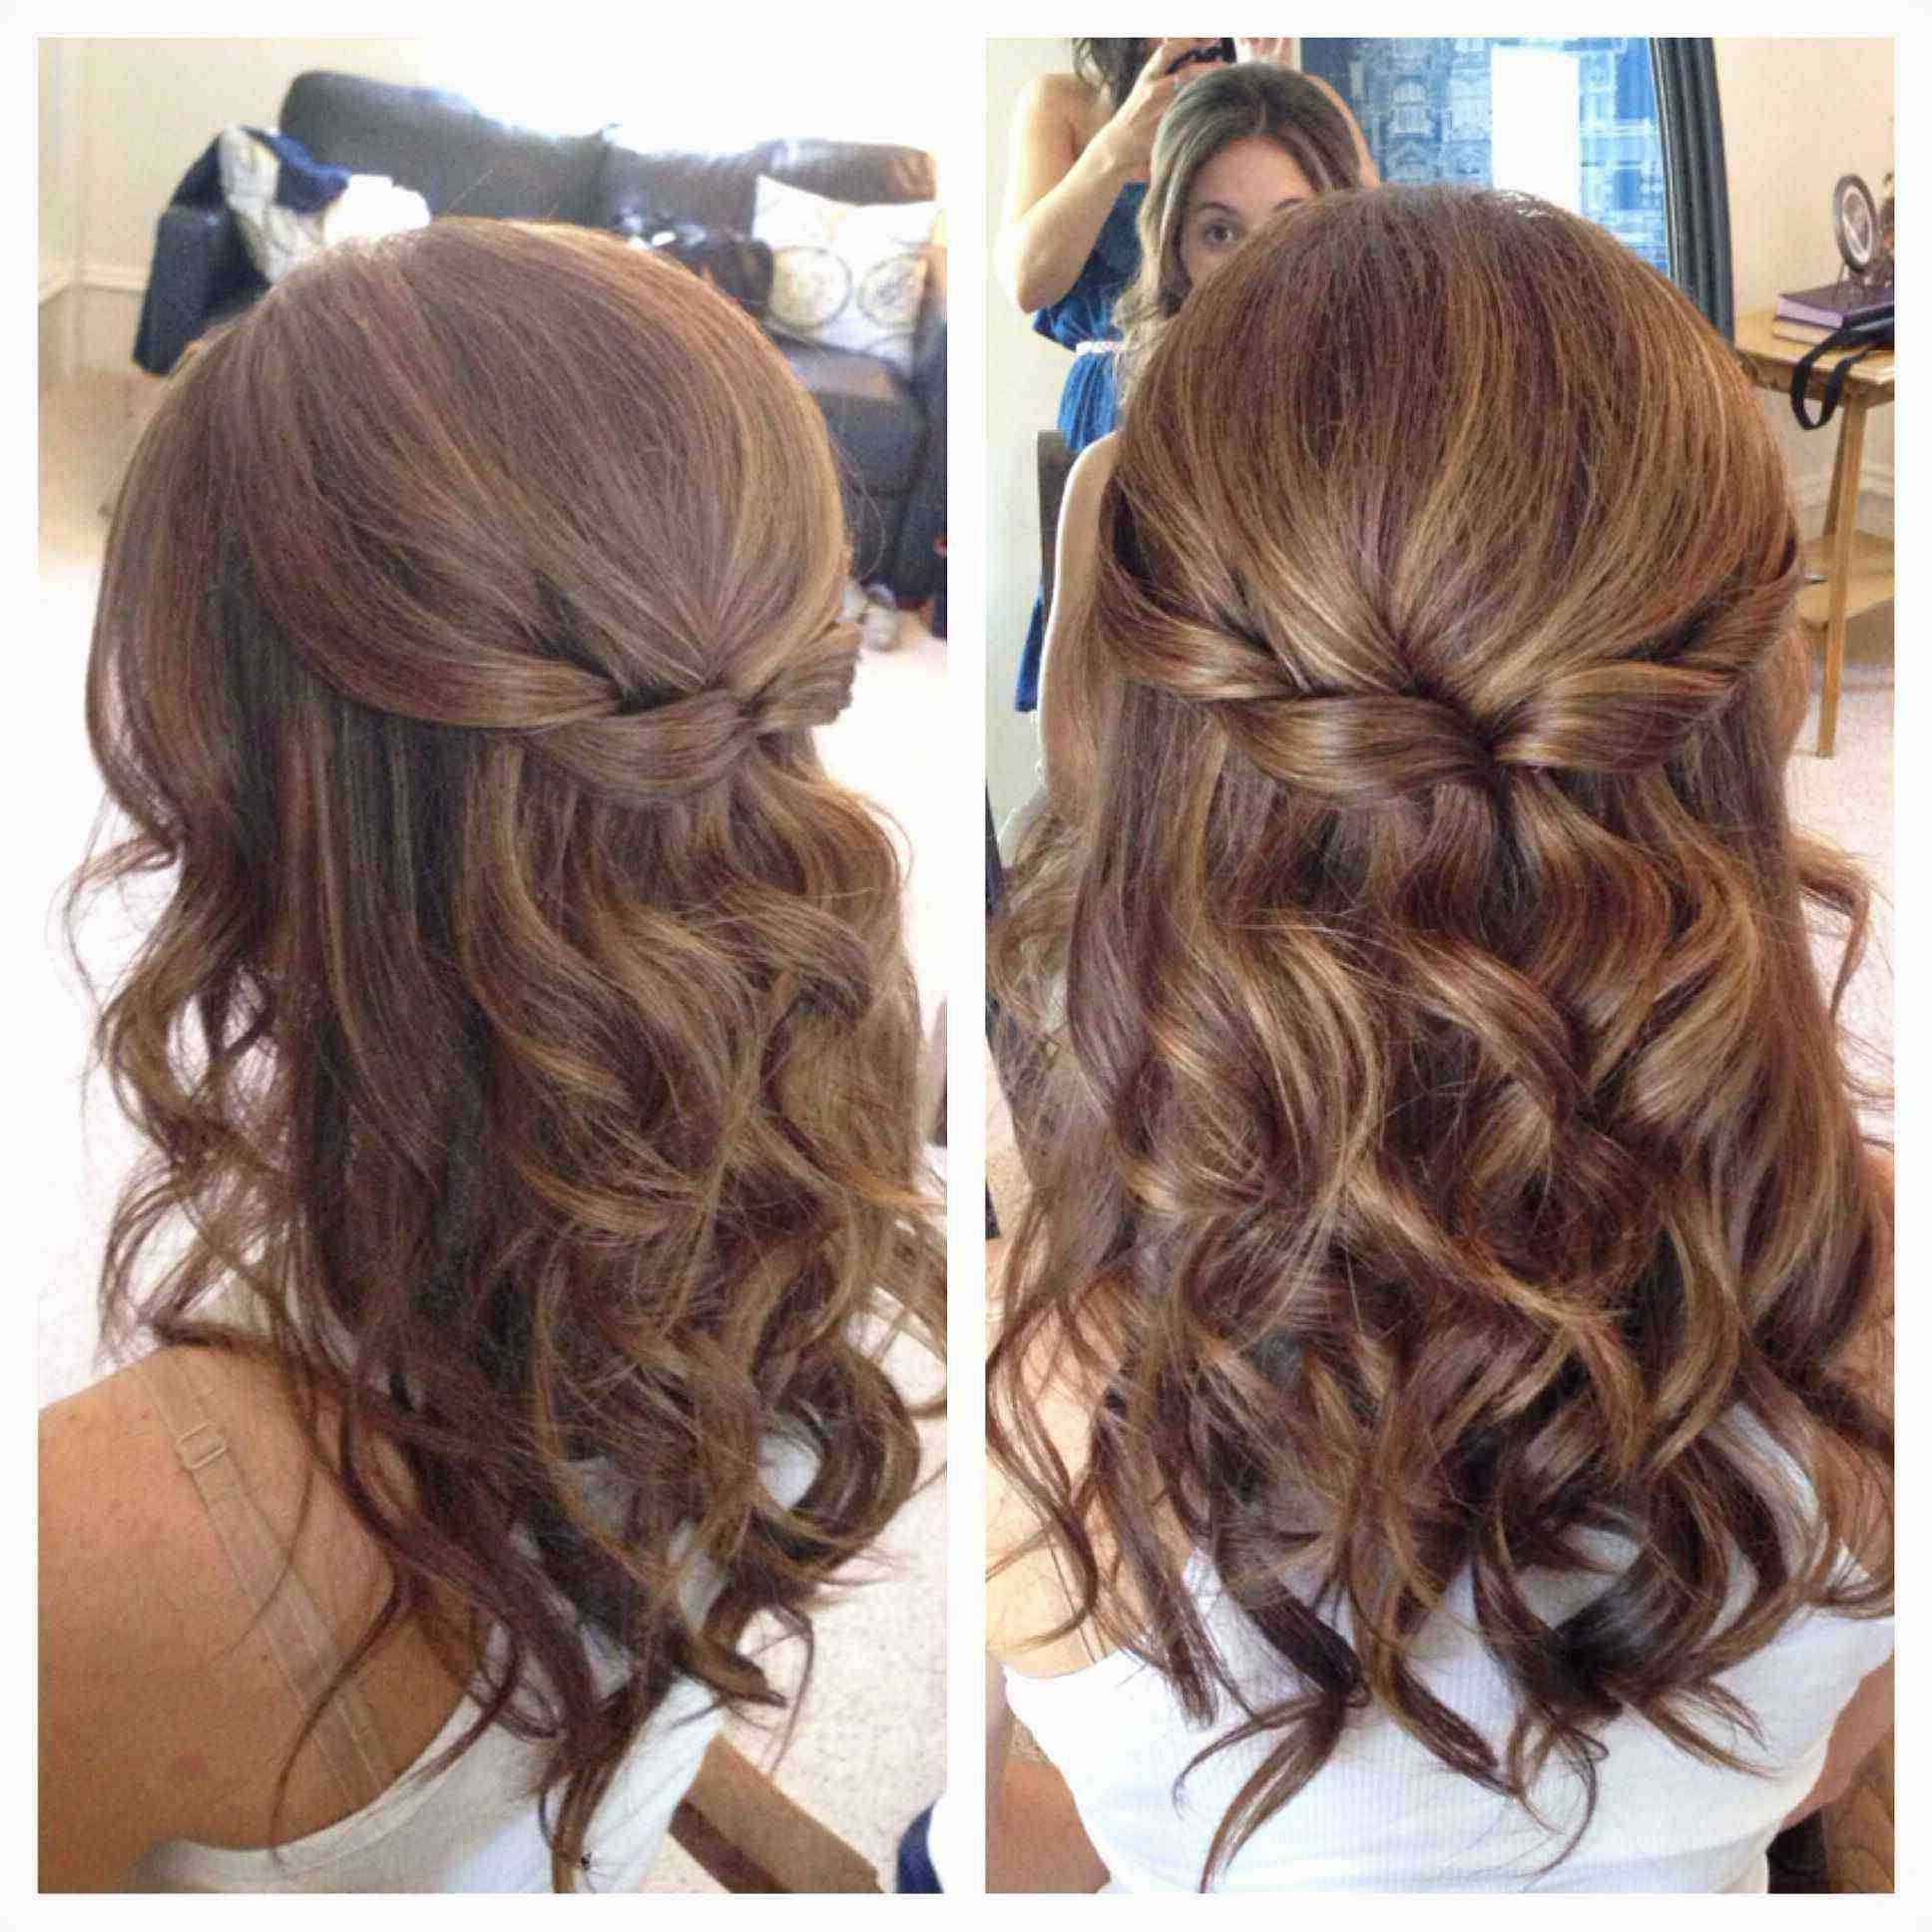 Wedding Hairstyles For Short Hair Half Up Half Down Unique Half Up Inside Most Up To Date Down Short Hair Wedding Hairstyles (View 11 of 15)